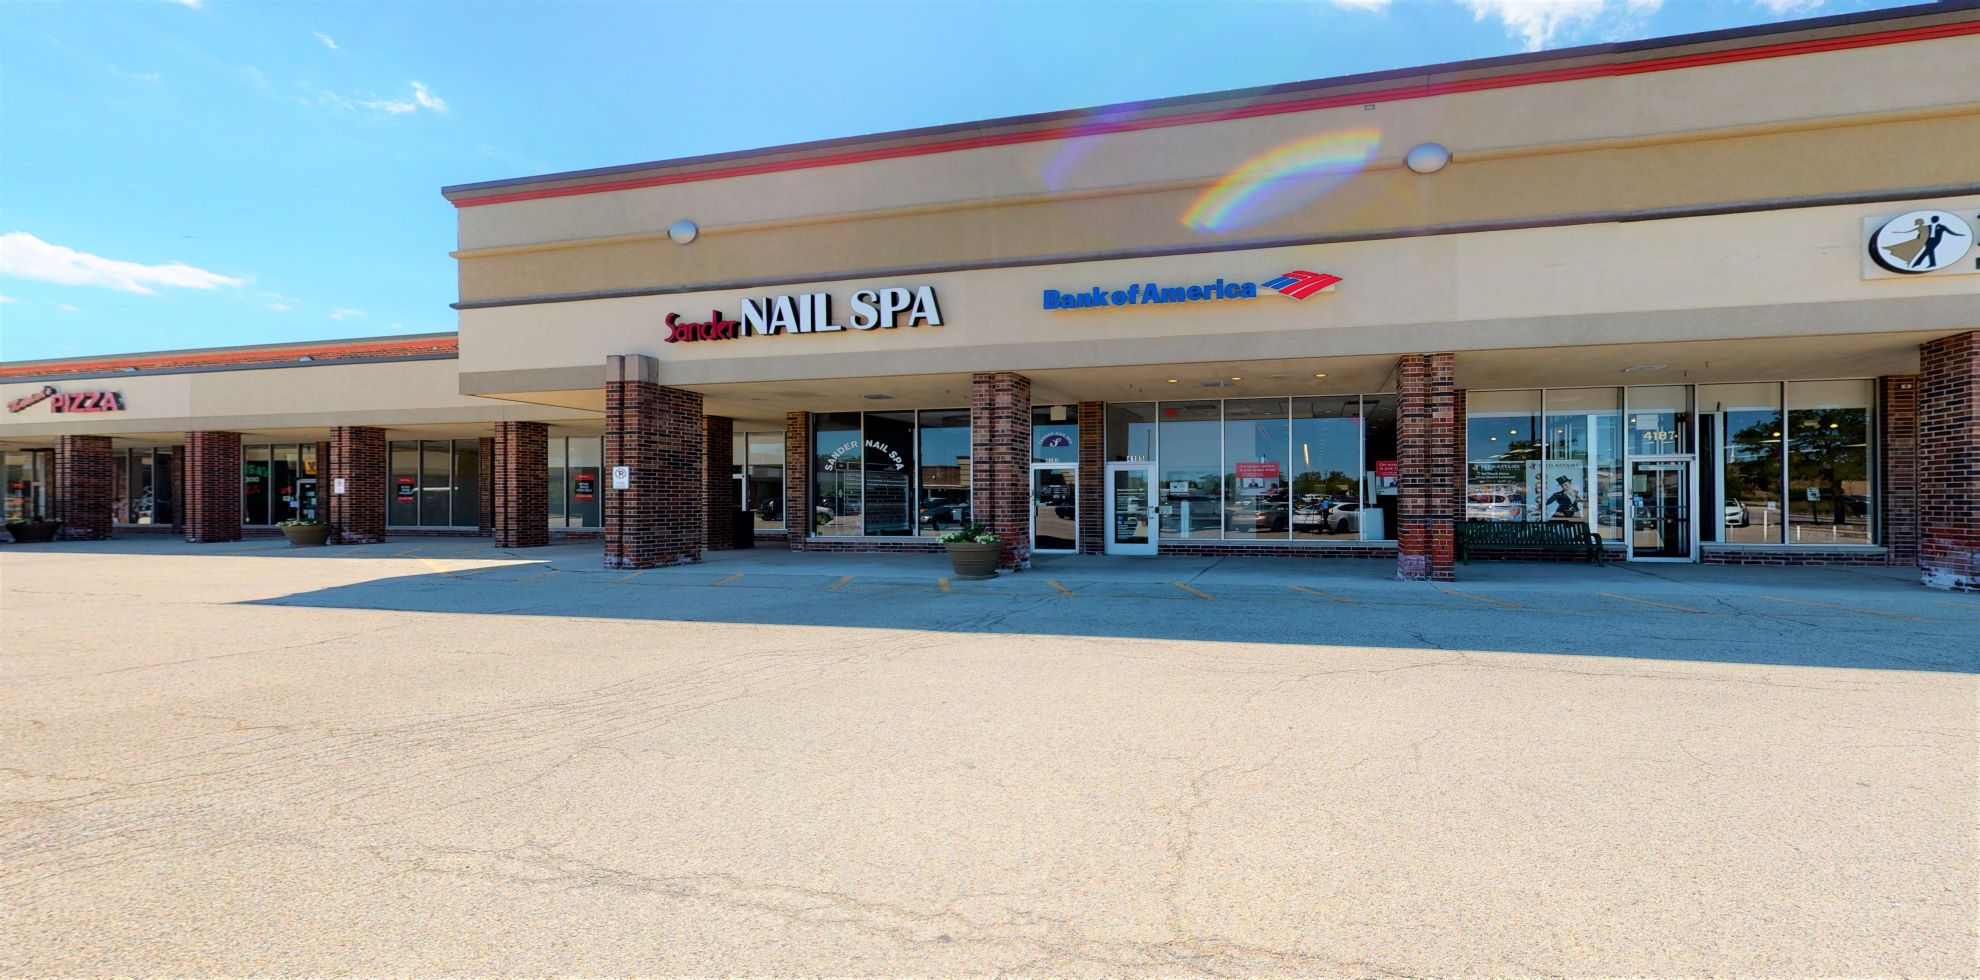 Bank of America Advanced Center with walk-up ATM | 4185 Dundee Rd, Northbrook, IL 60062